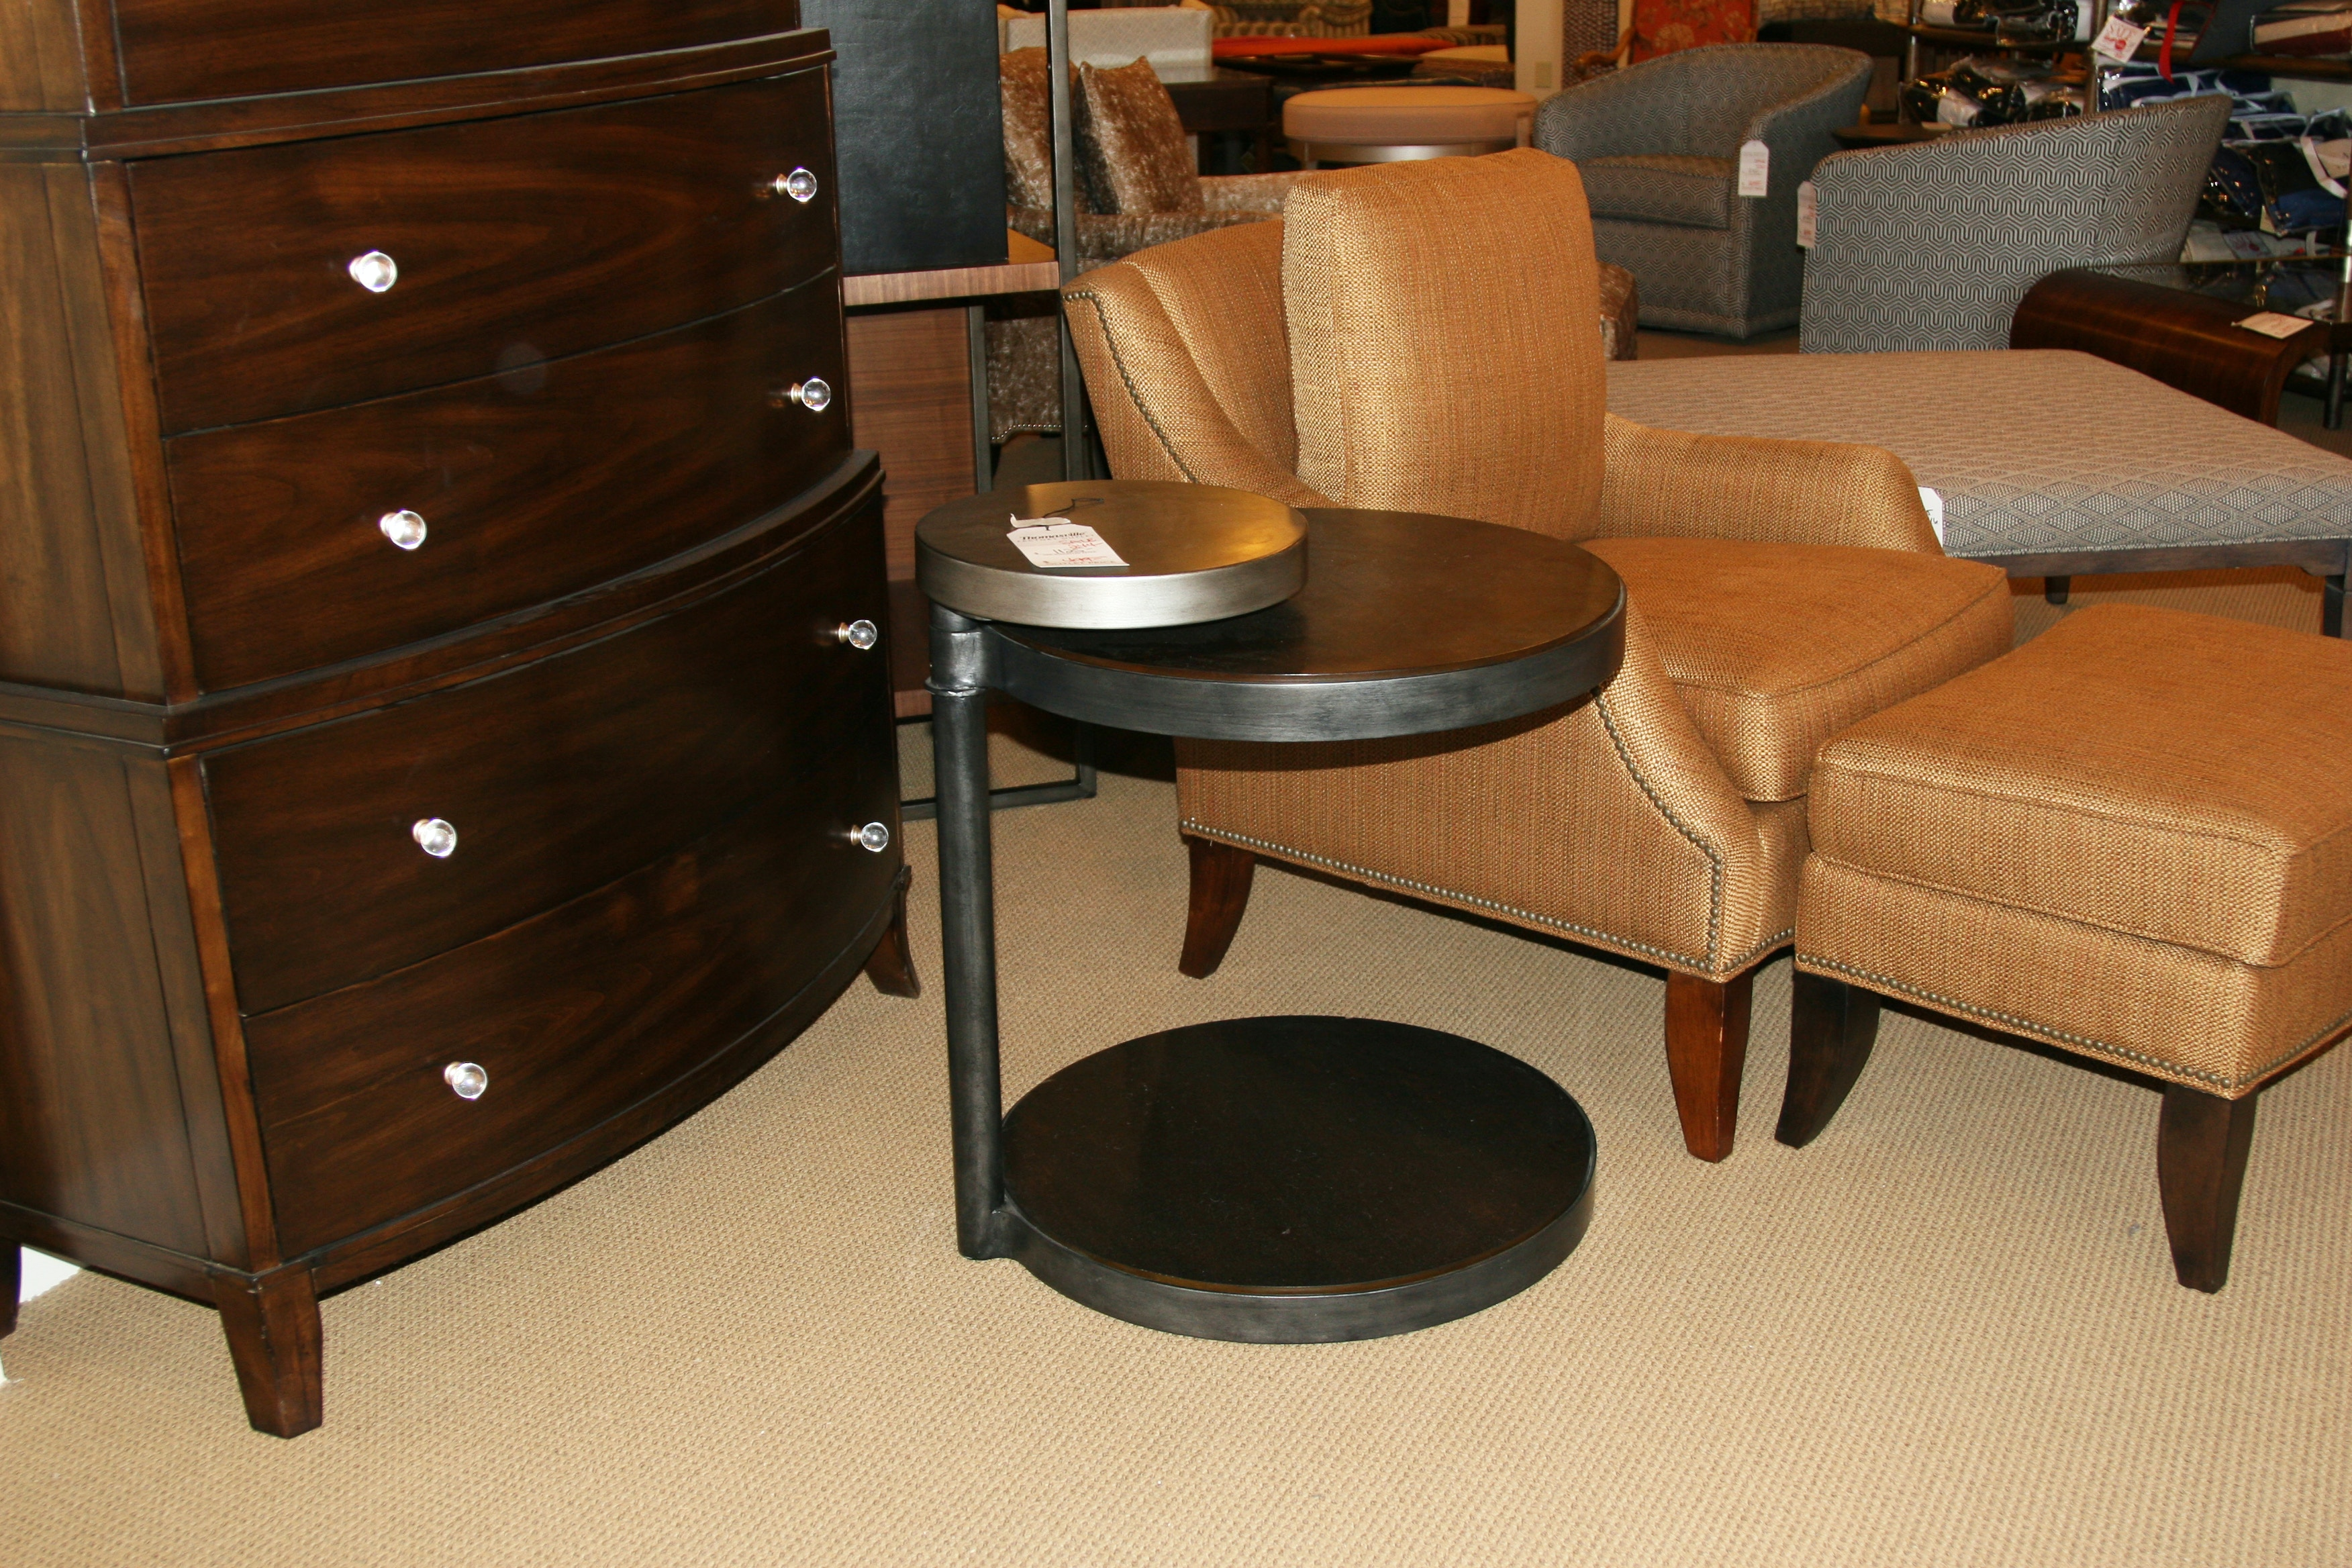 Thomasville Factory Outlet Round End Table 85591 225